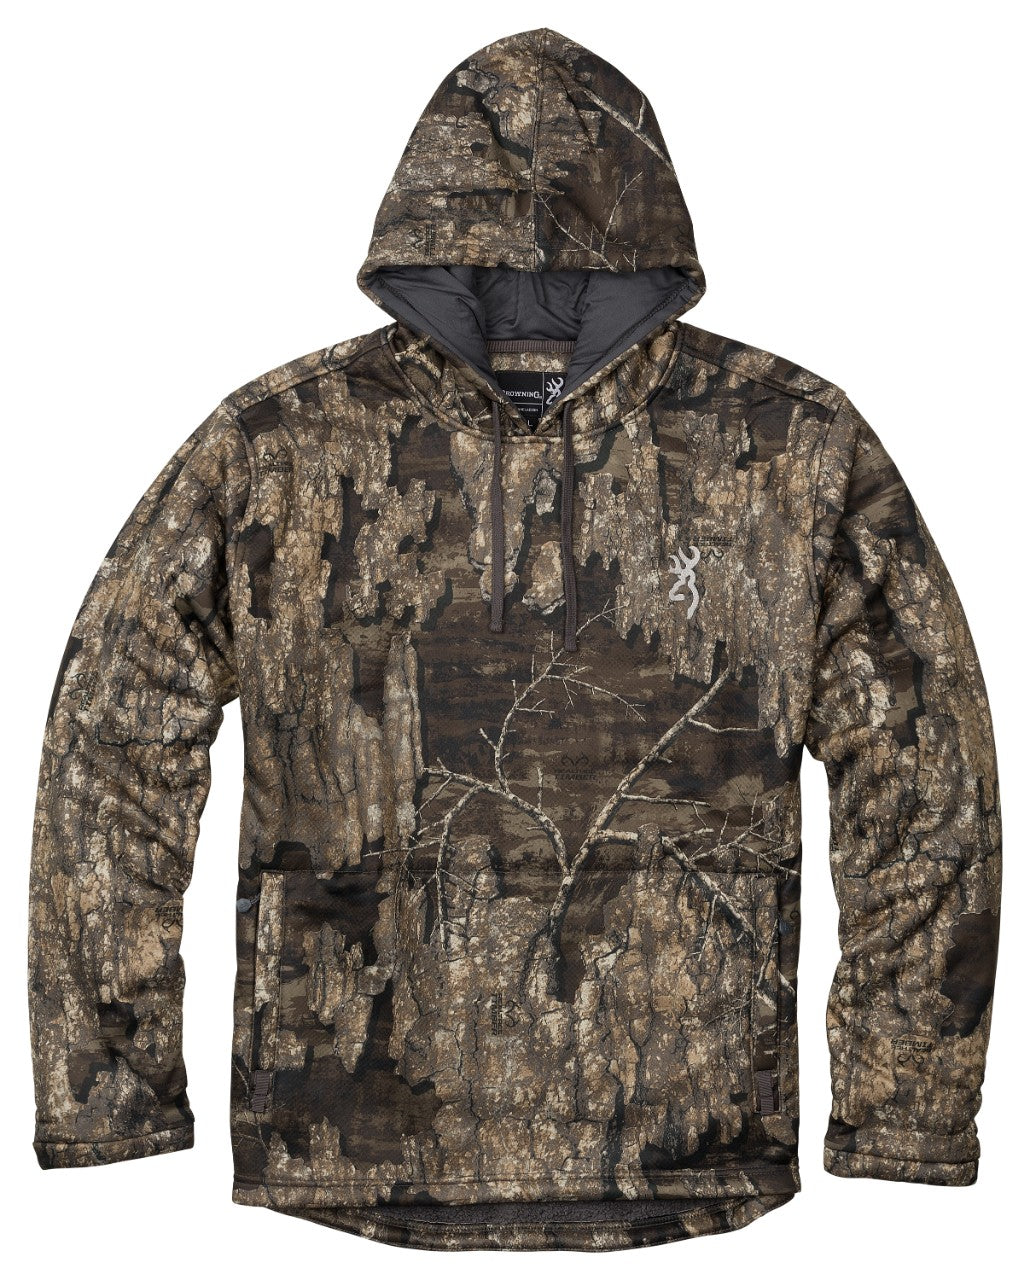 HOOD,WW,HIGHPILE,RTT,3XL